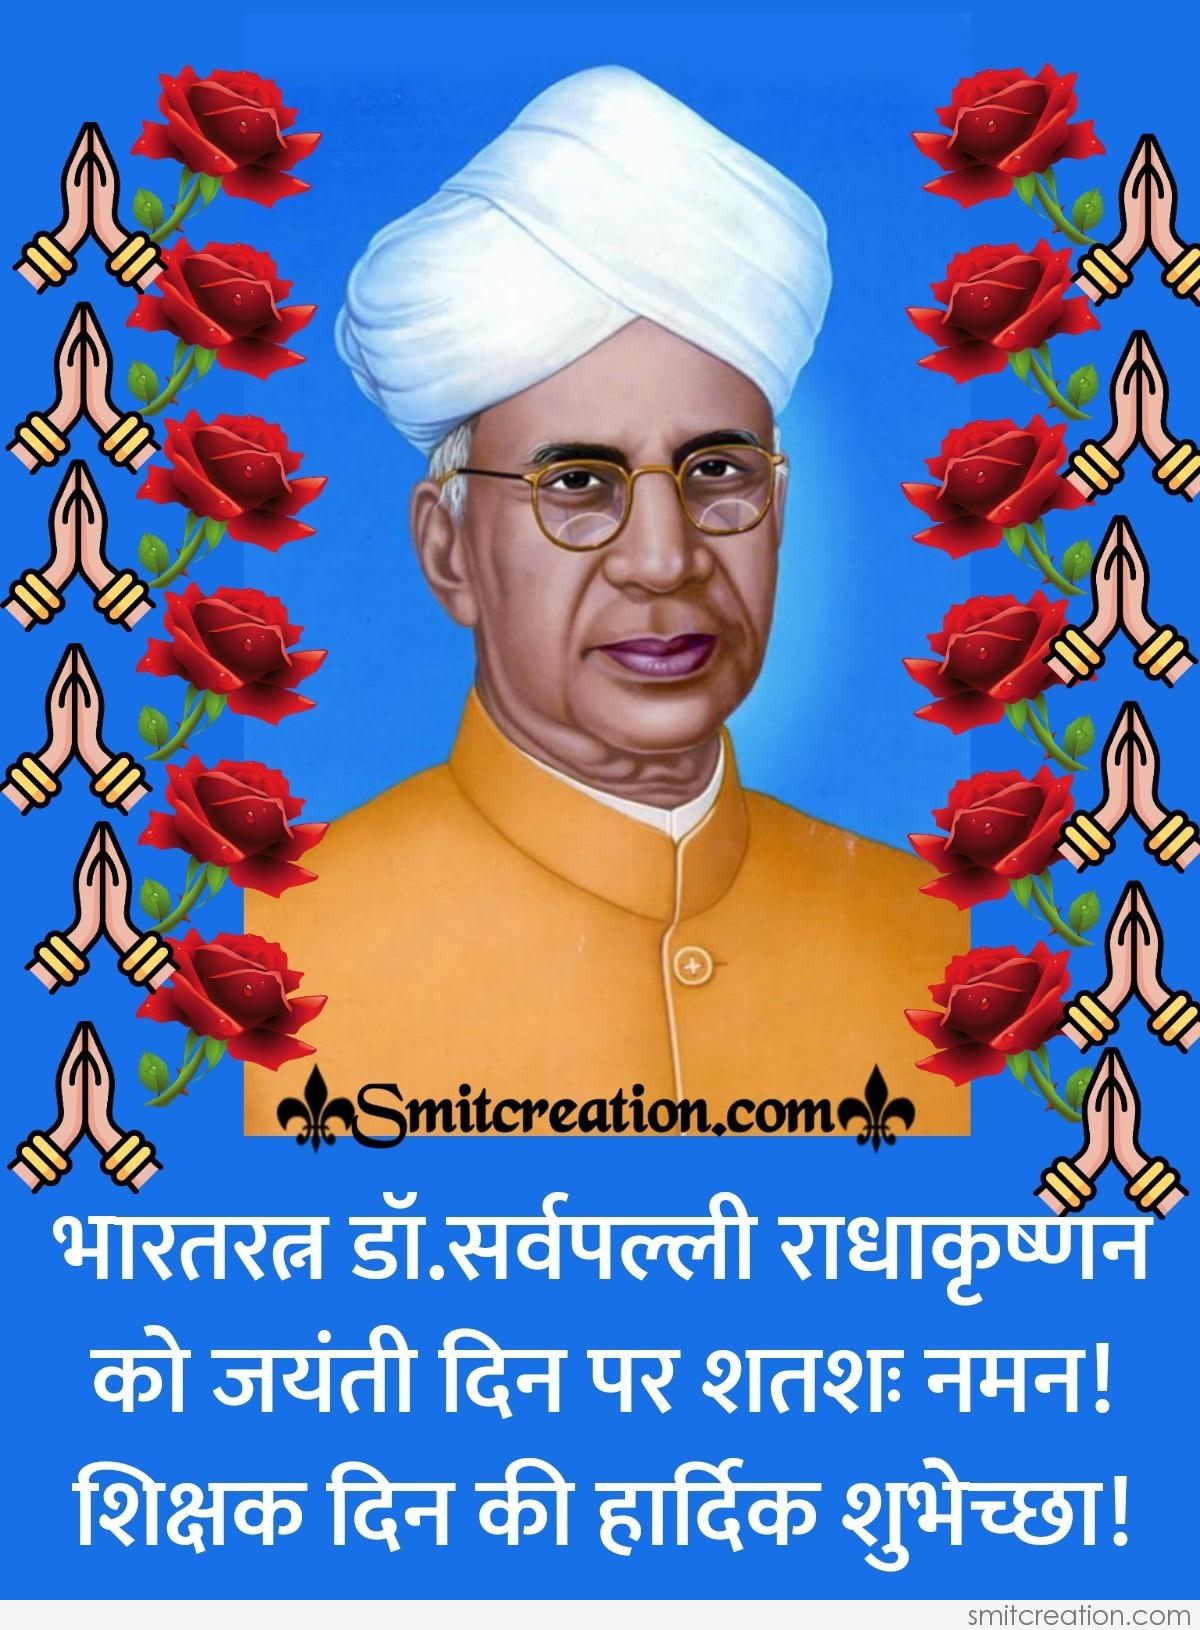 Teachers Day Hindi Images Pictures and Graphics